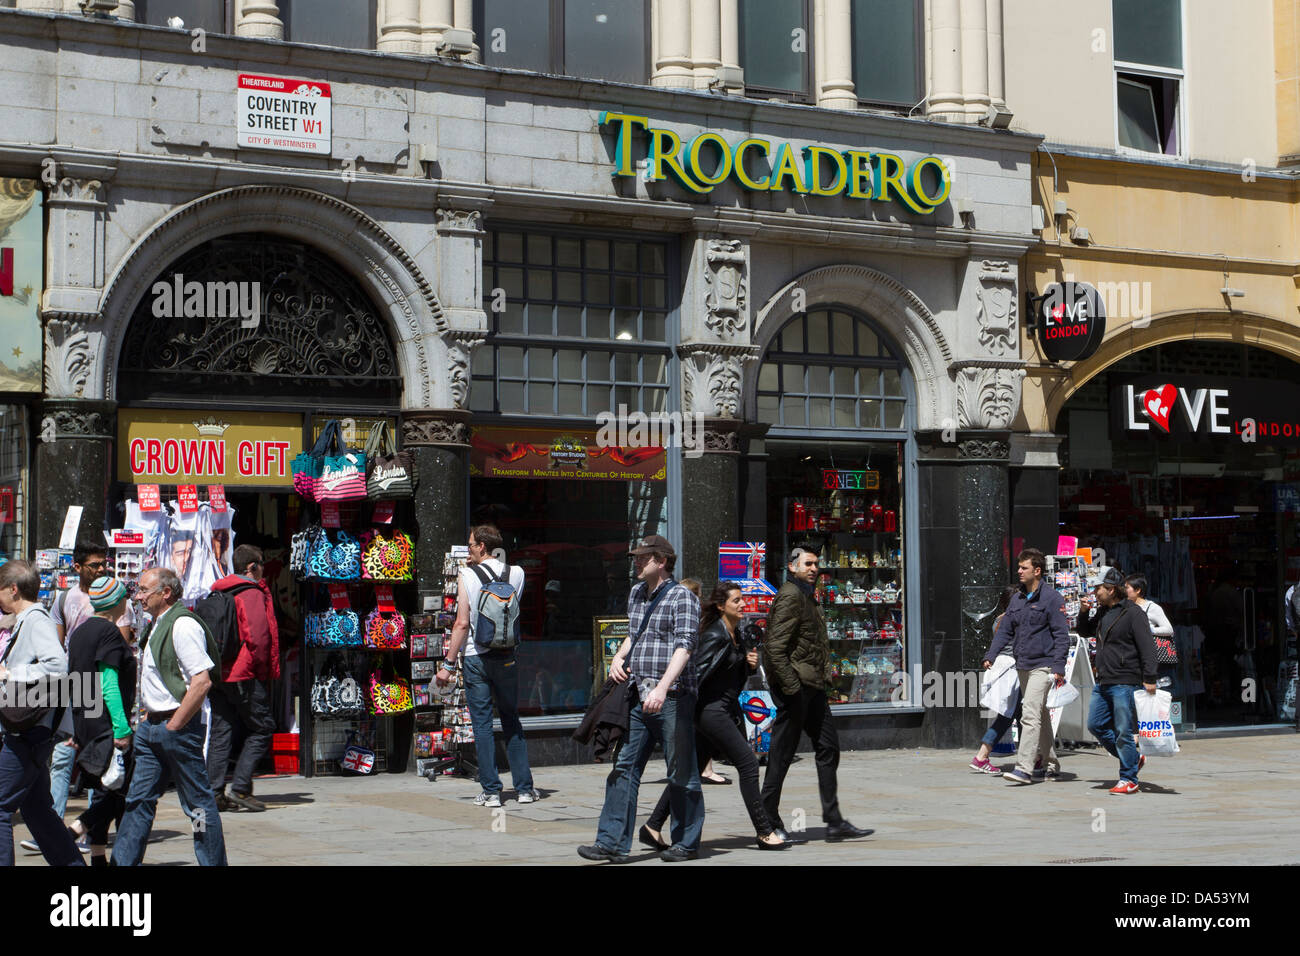 People walking along Coventry Street by the Trocadero centre, Londons West End, England, UK - Stock Image